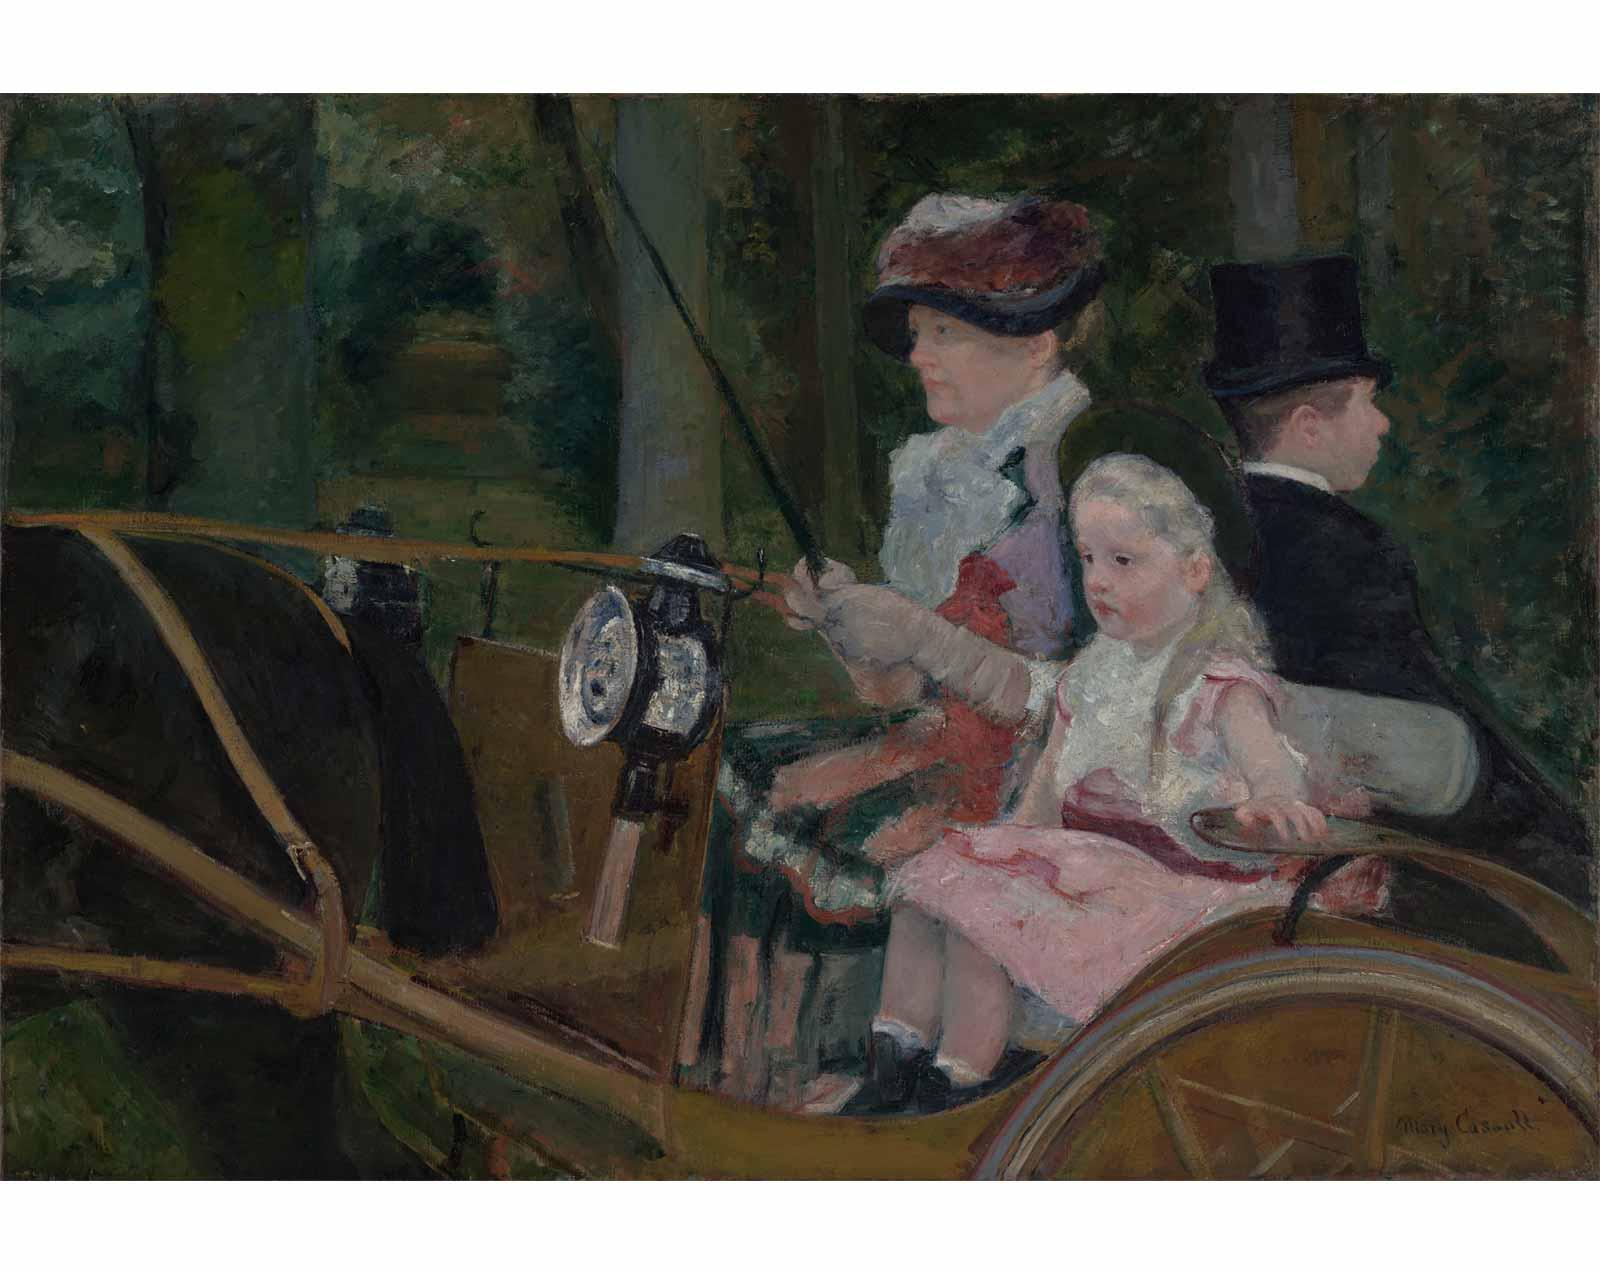 A Woman and a Girl Driving, by Mary Stevenson Cassatt, 1881